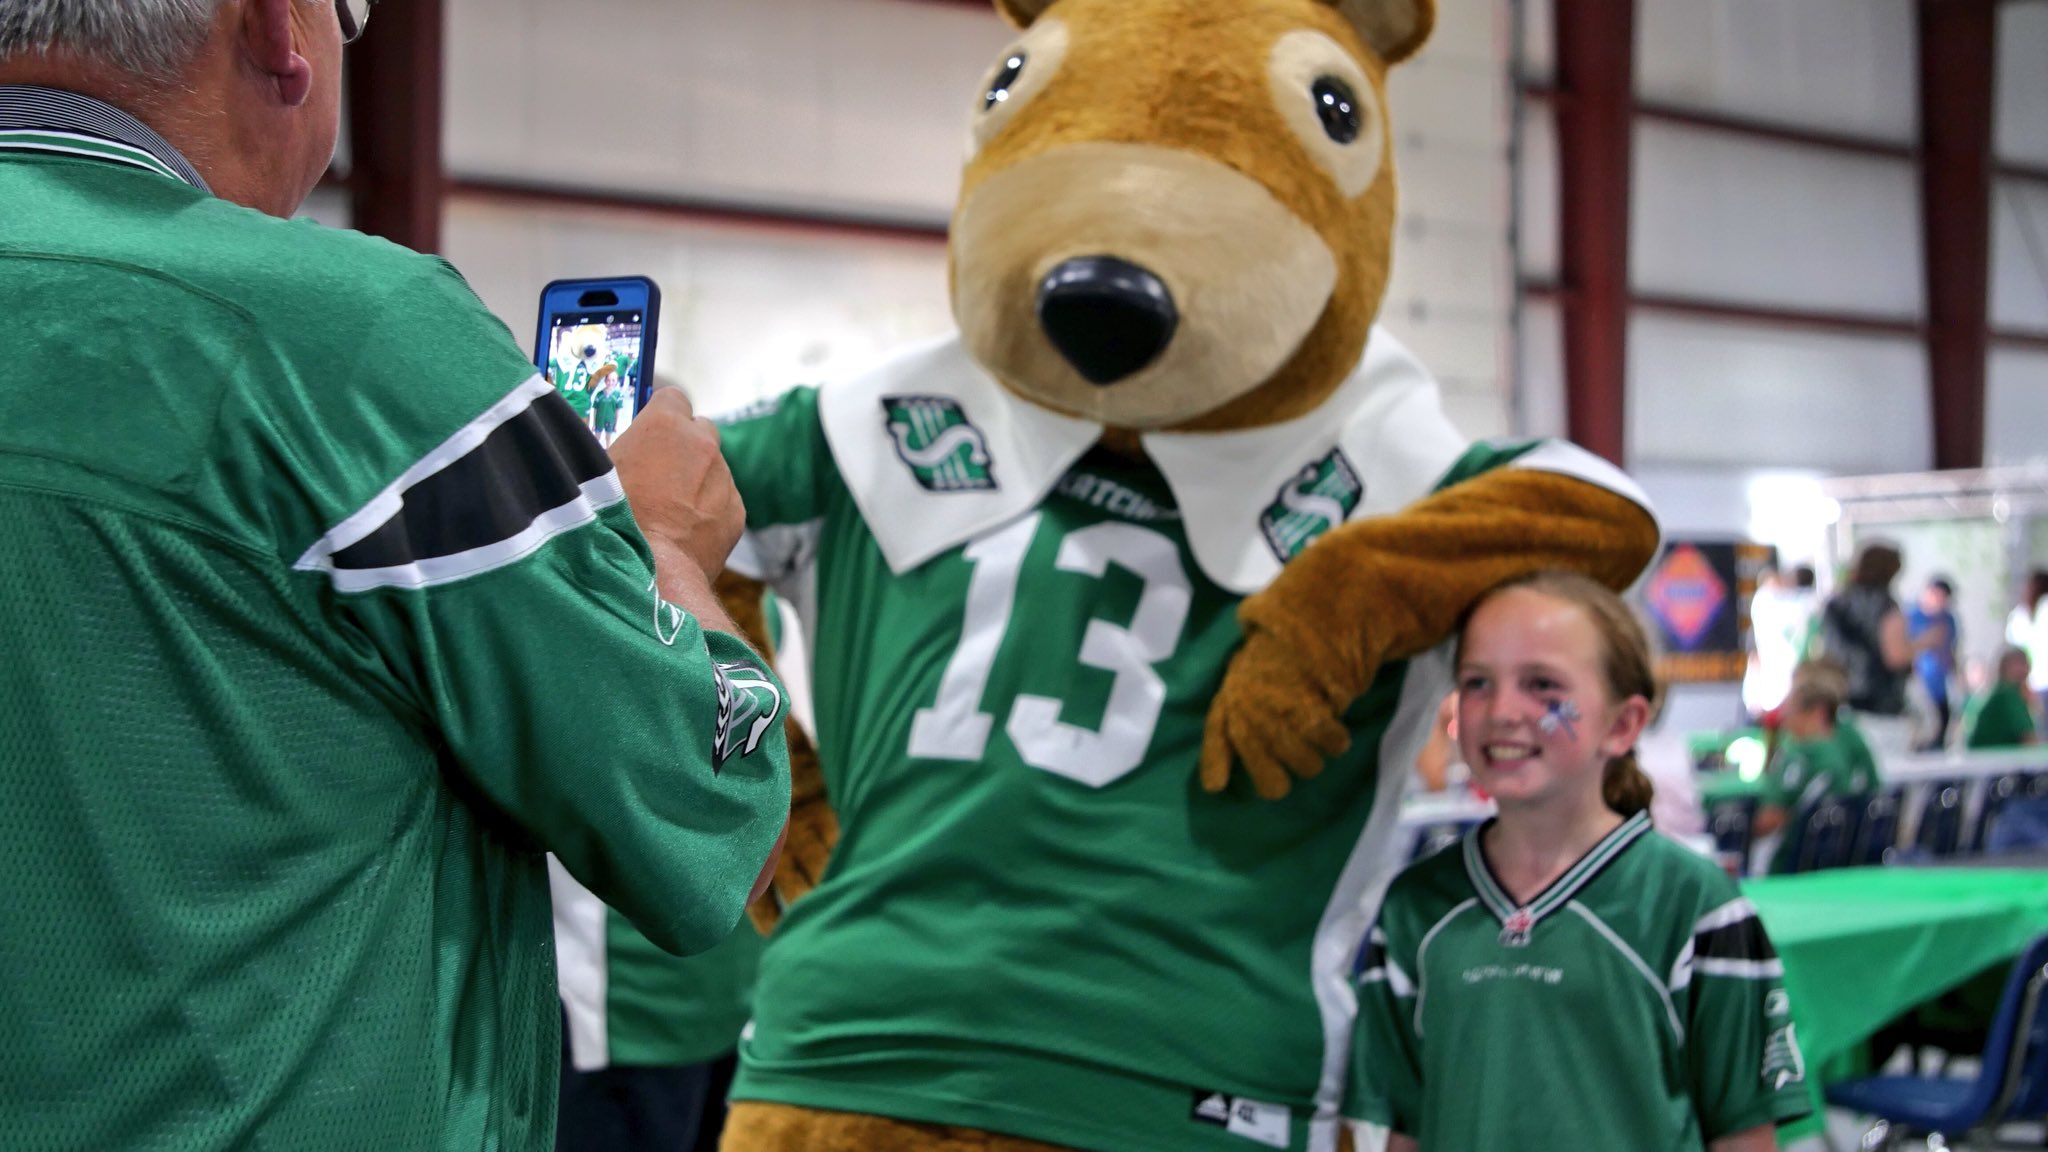 Saskatchewan Roughriders on Saskatchewan roughriders